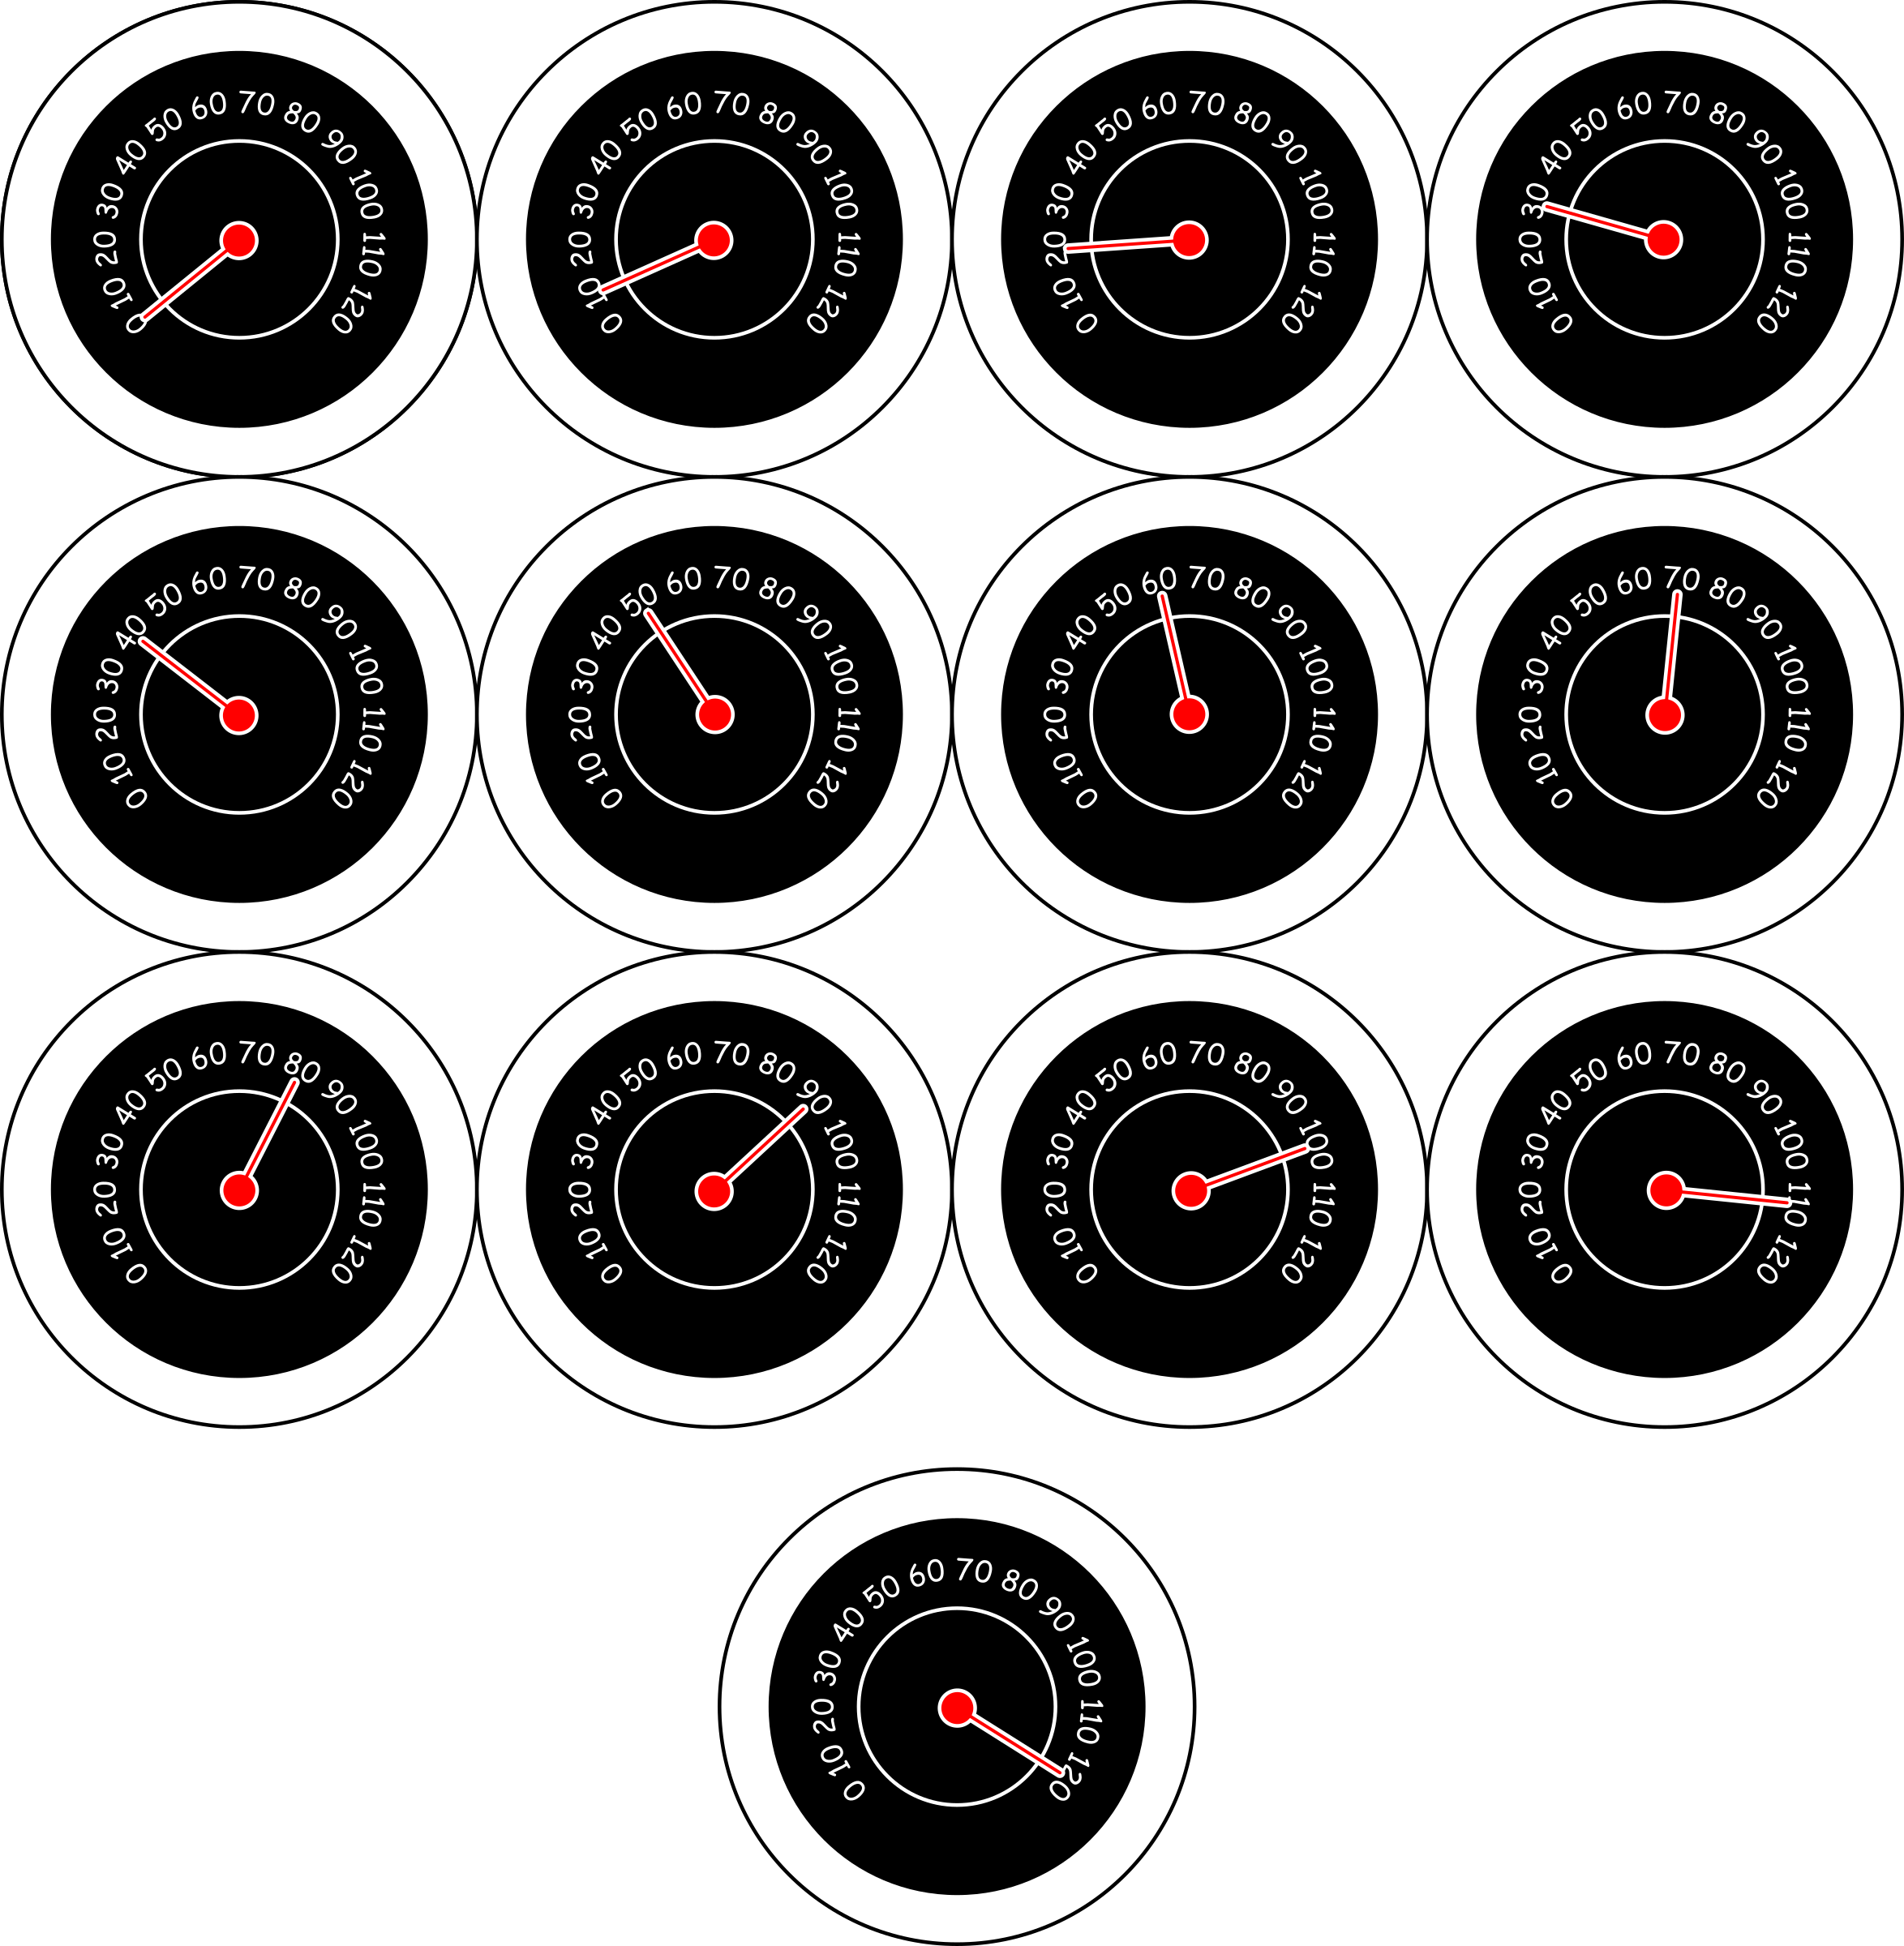 speedometer dials by TomBrough